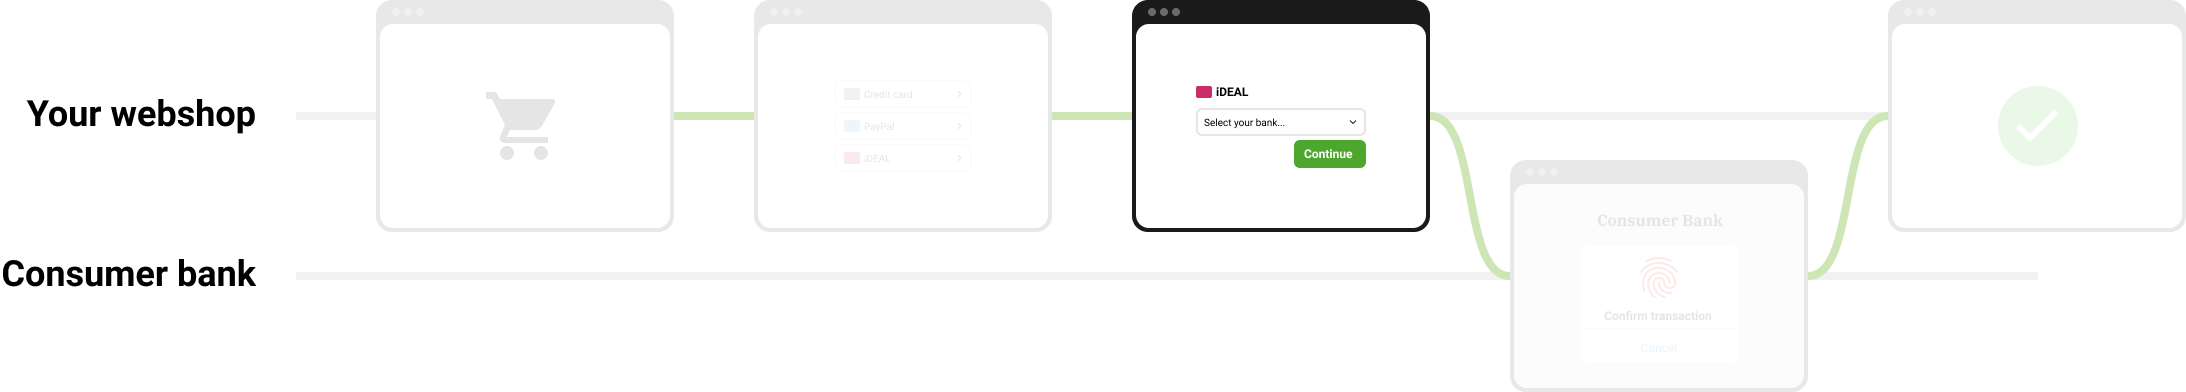 https://assets.docs.mollie.com/_images/checkout-flow-embedded-ideal-issuer-selection@2x.png